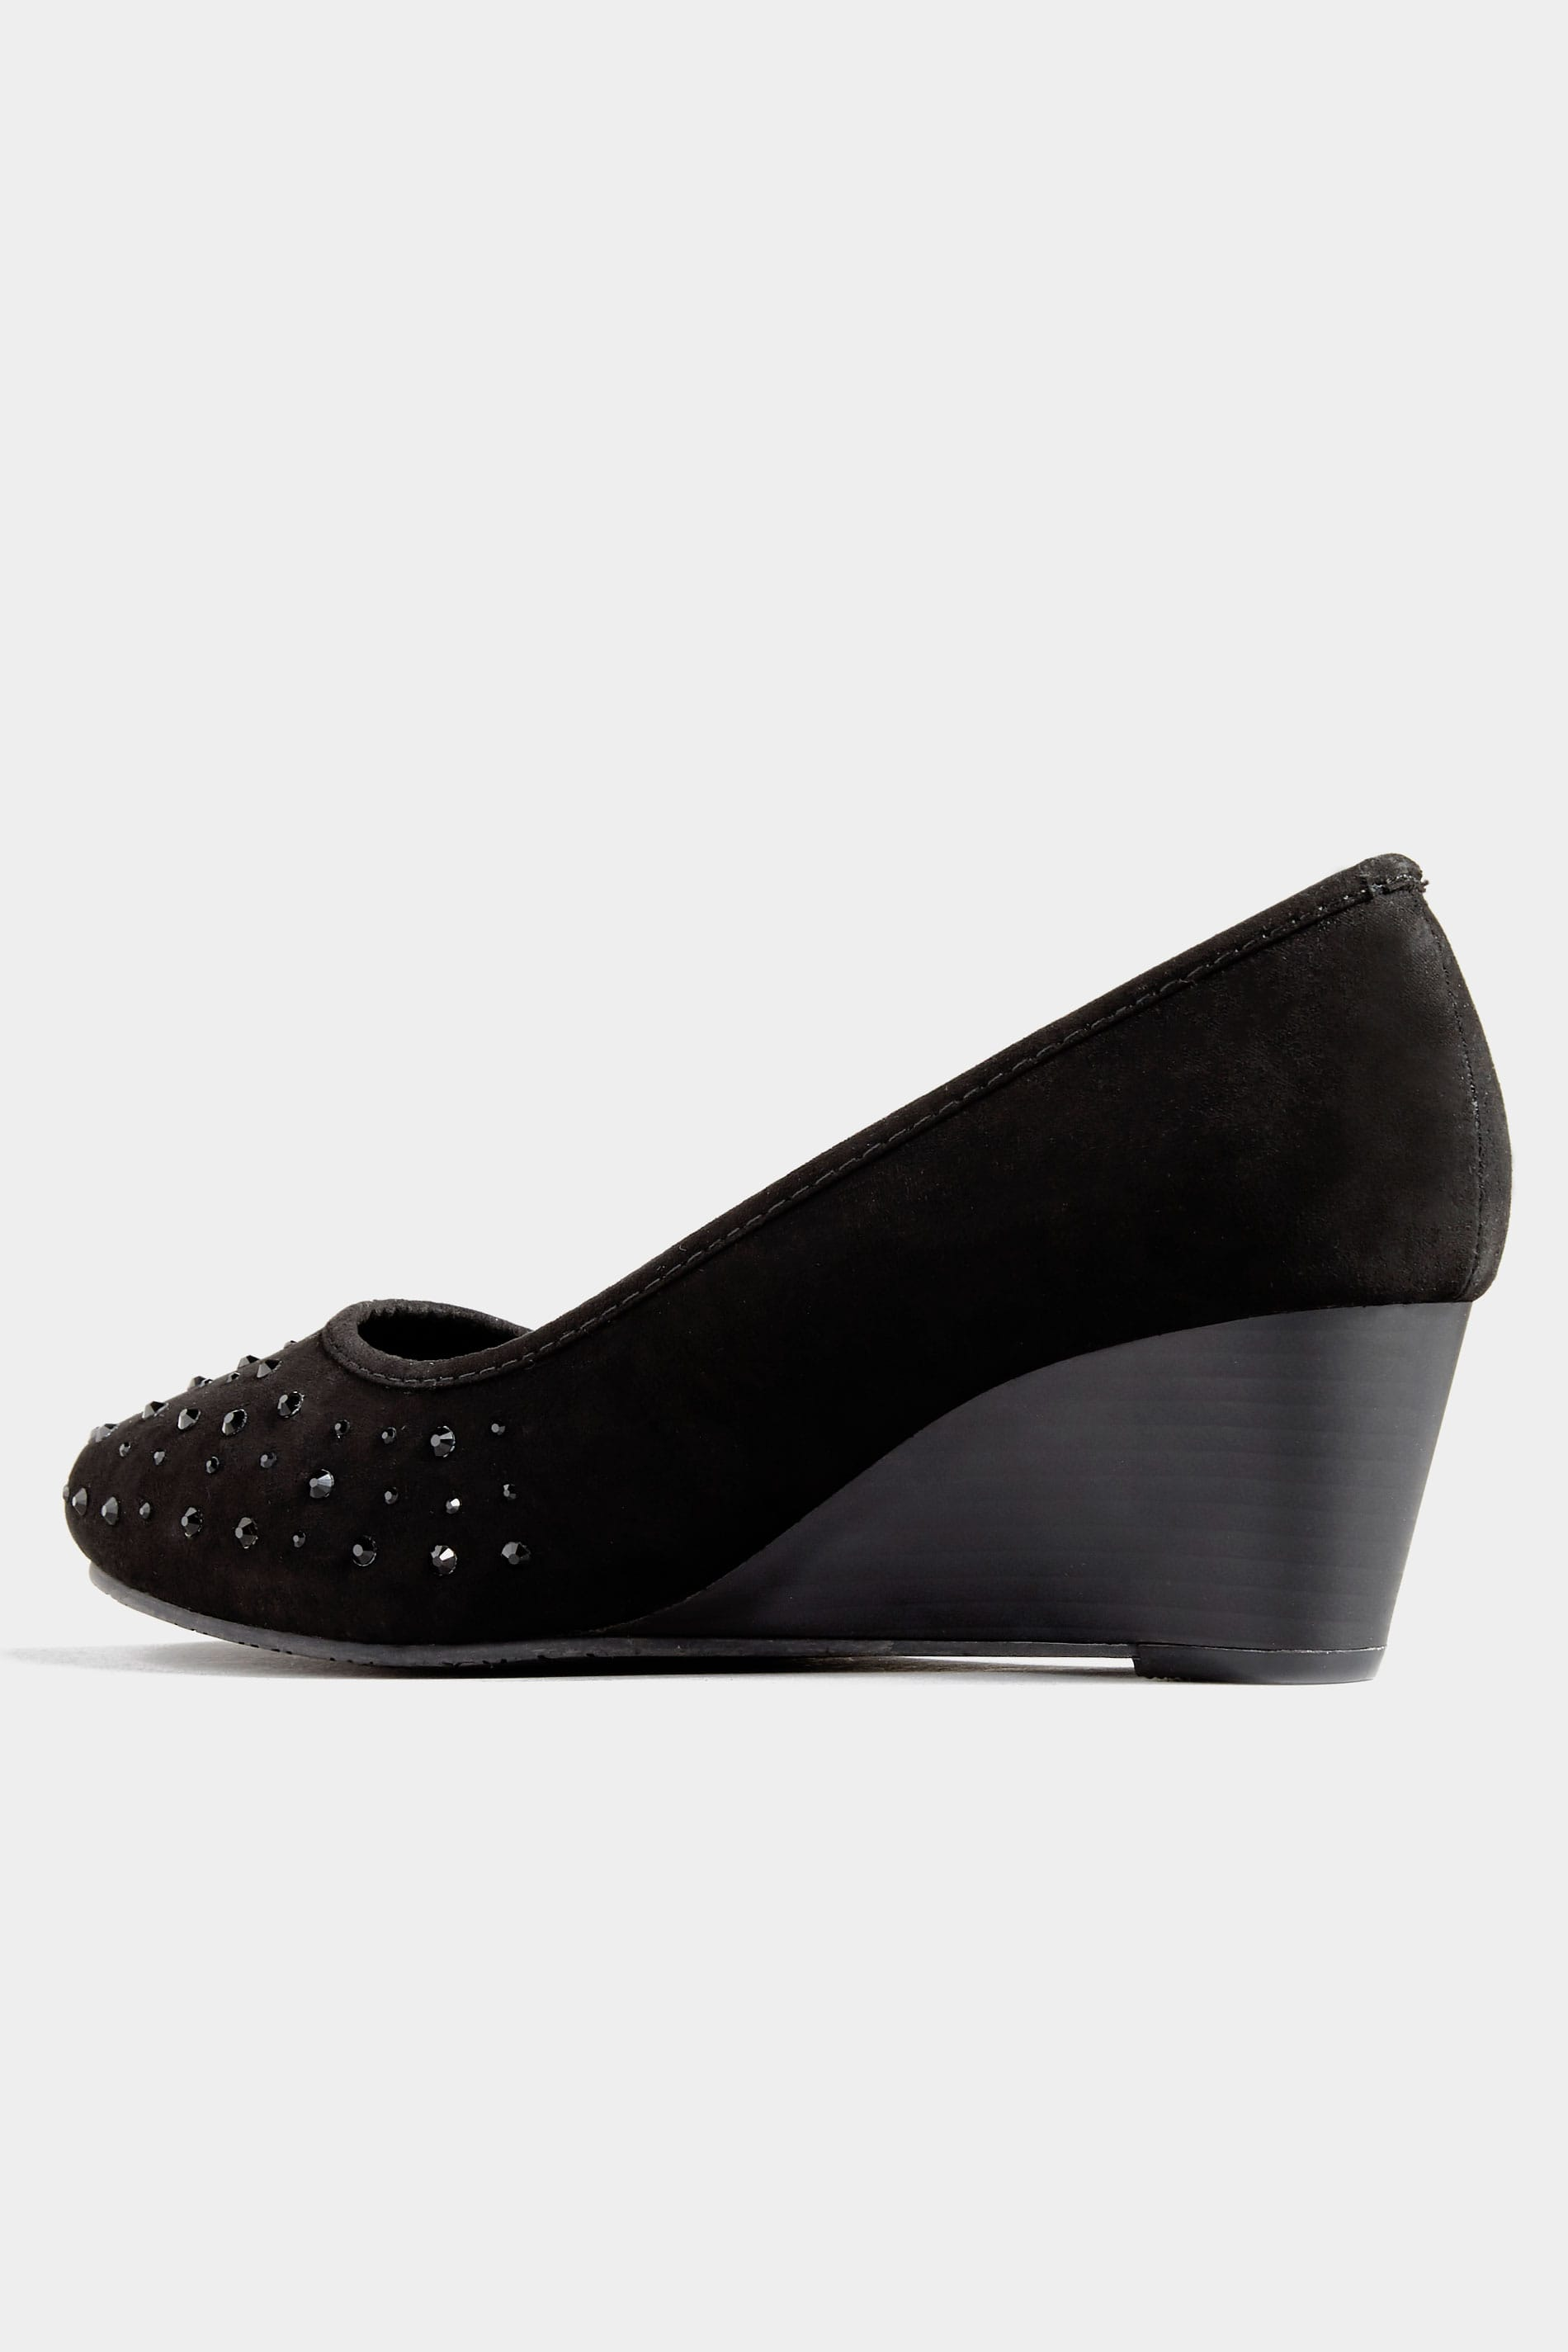 Yours Clothing Wide Fit Women/'s Black Embellished Court Shoes In Extra Wide Fit